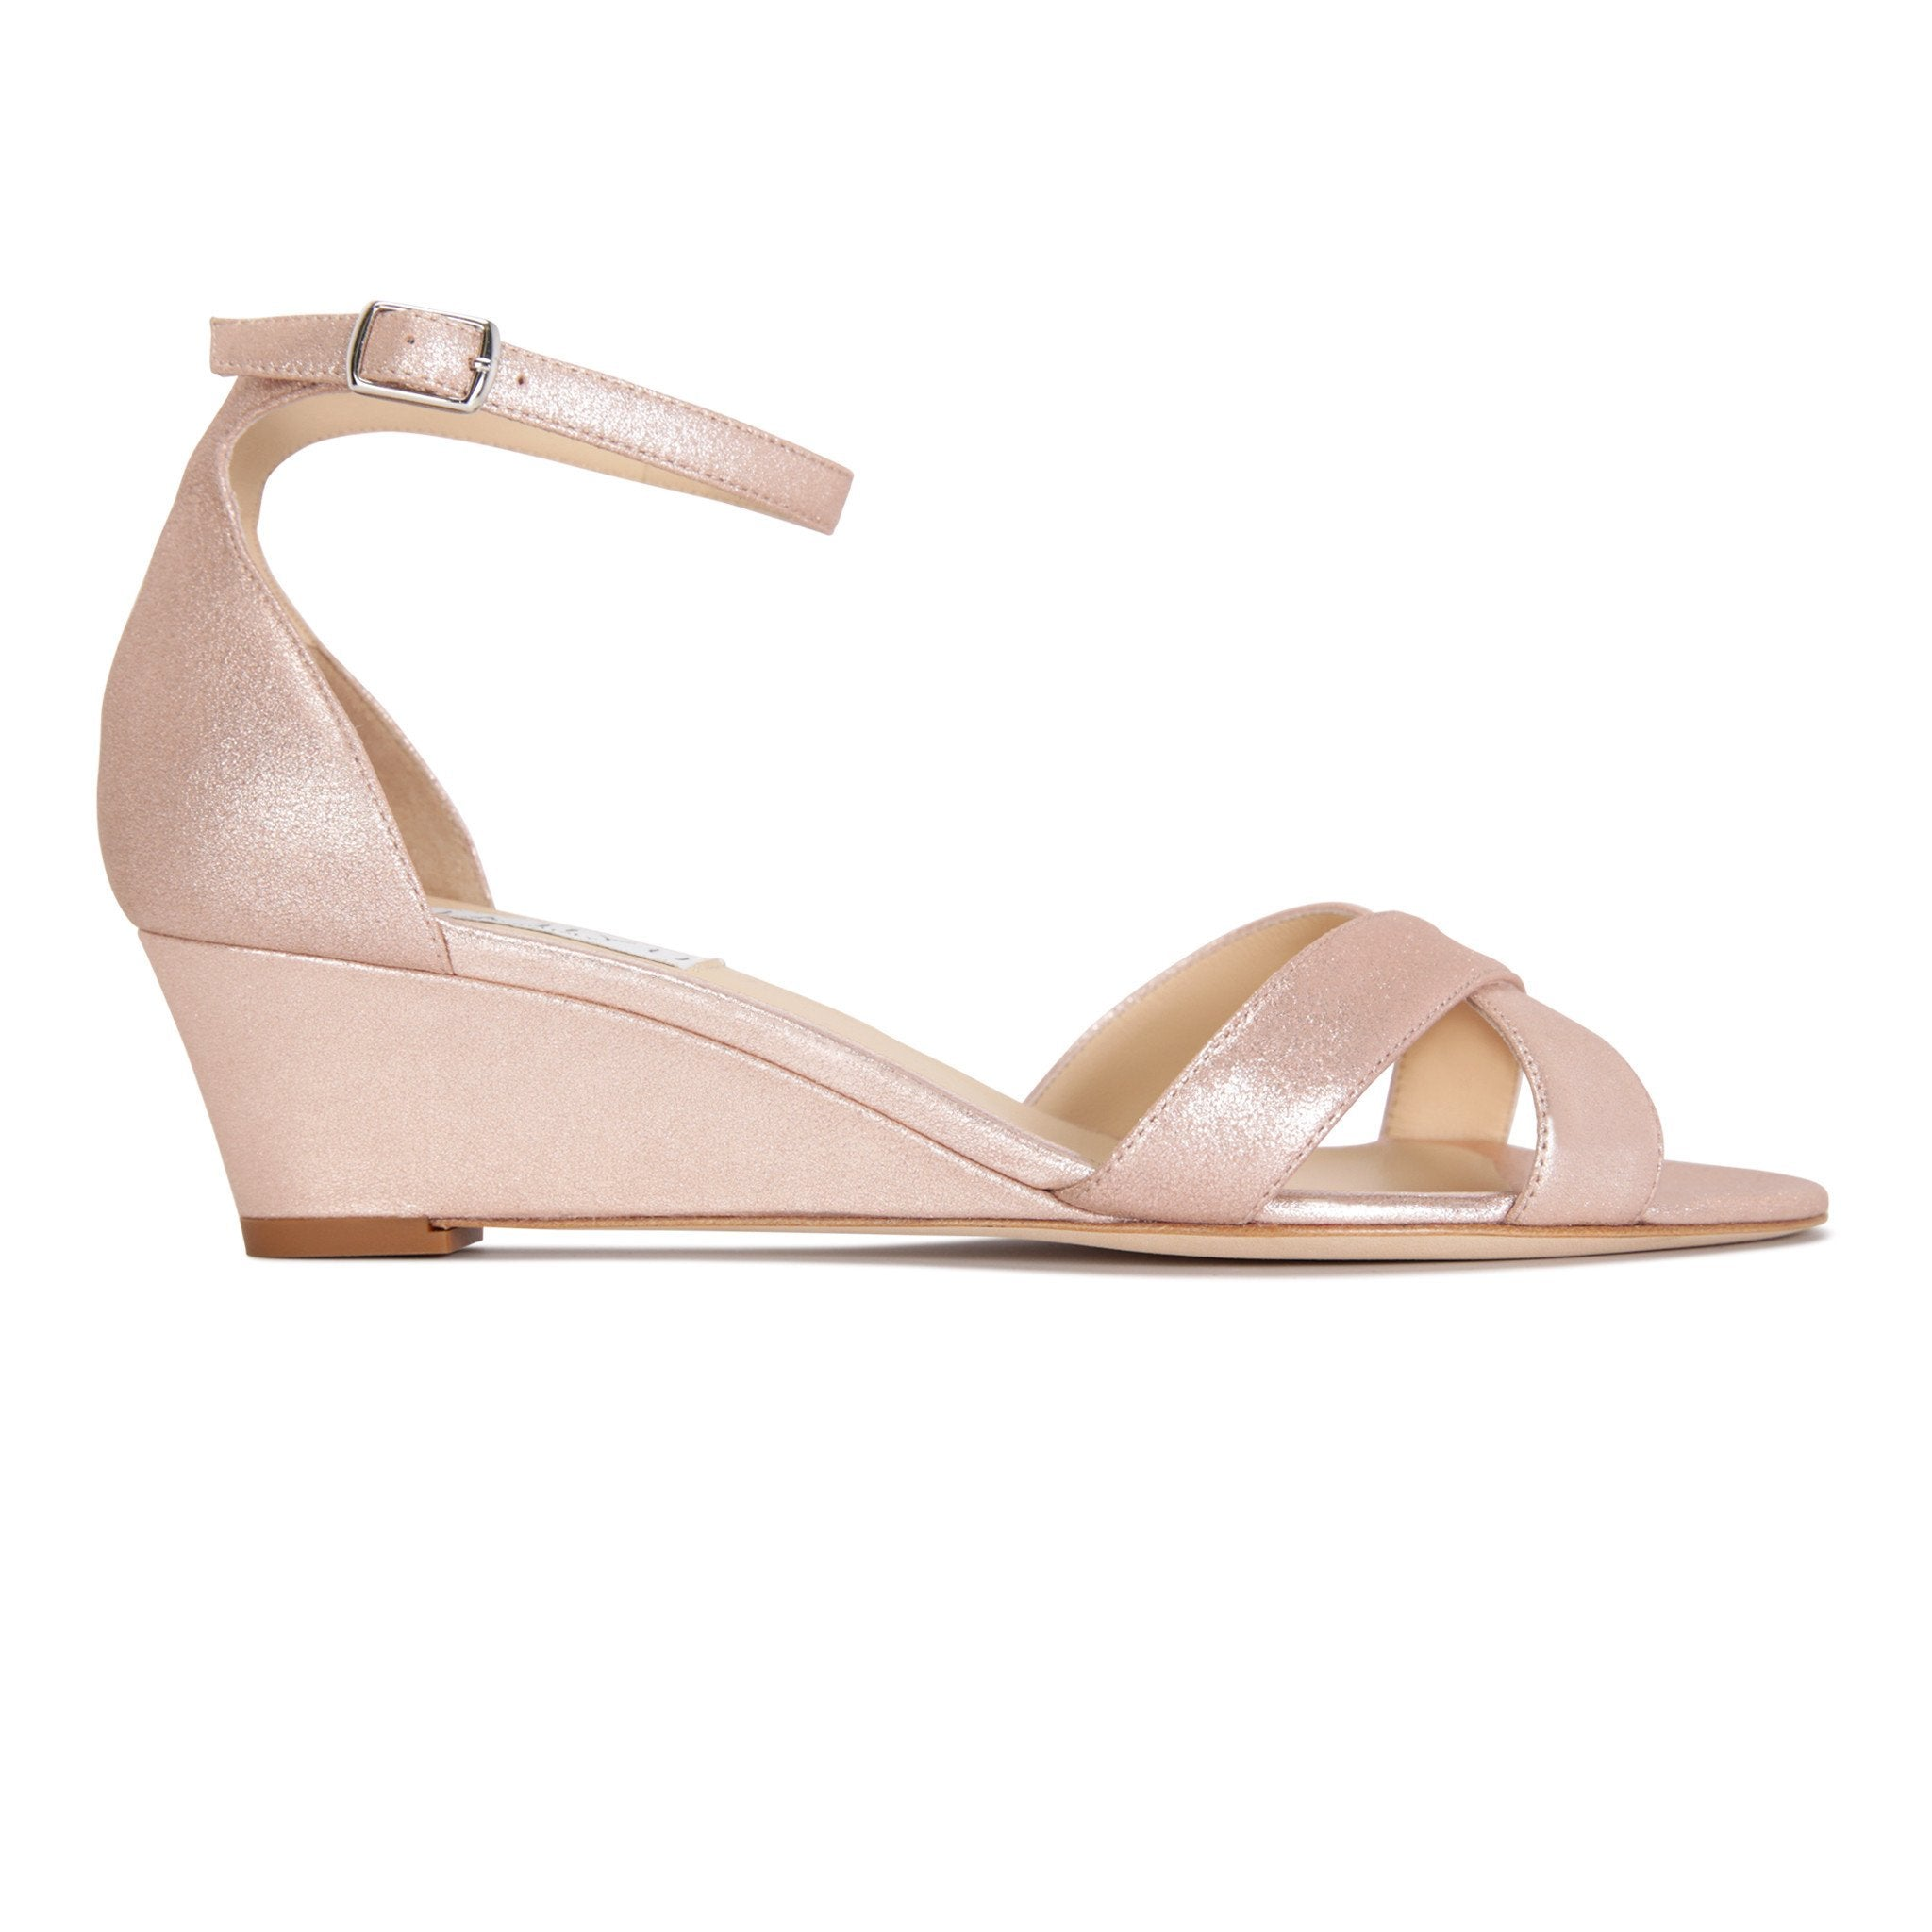 SORRENTO - Burma Rose Gold, VIAJIYU - Women's Hand Made Sustainable Luxury Shoes. Made in Italy. Made to Order.